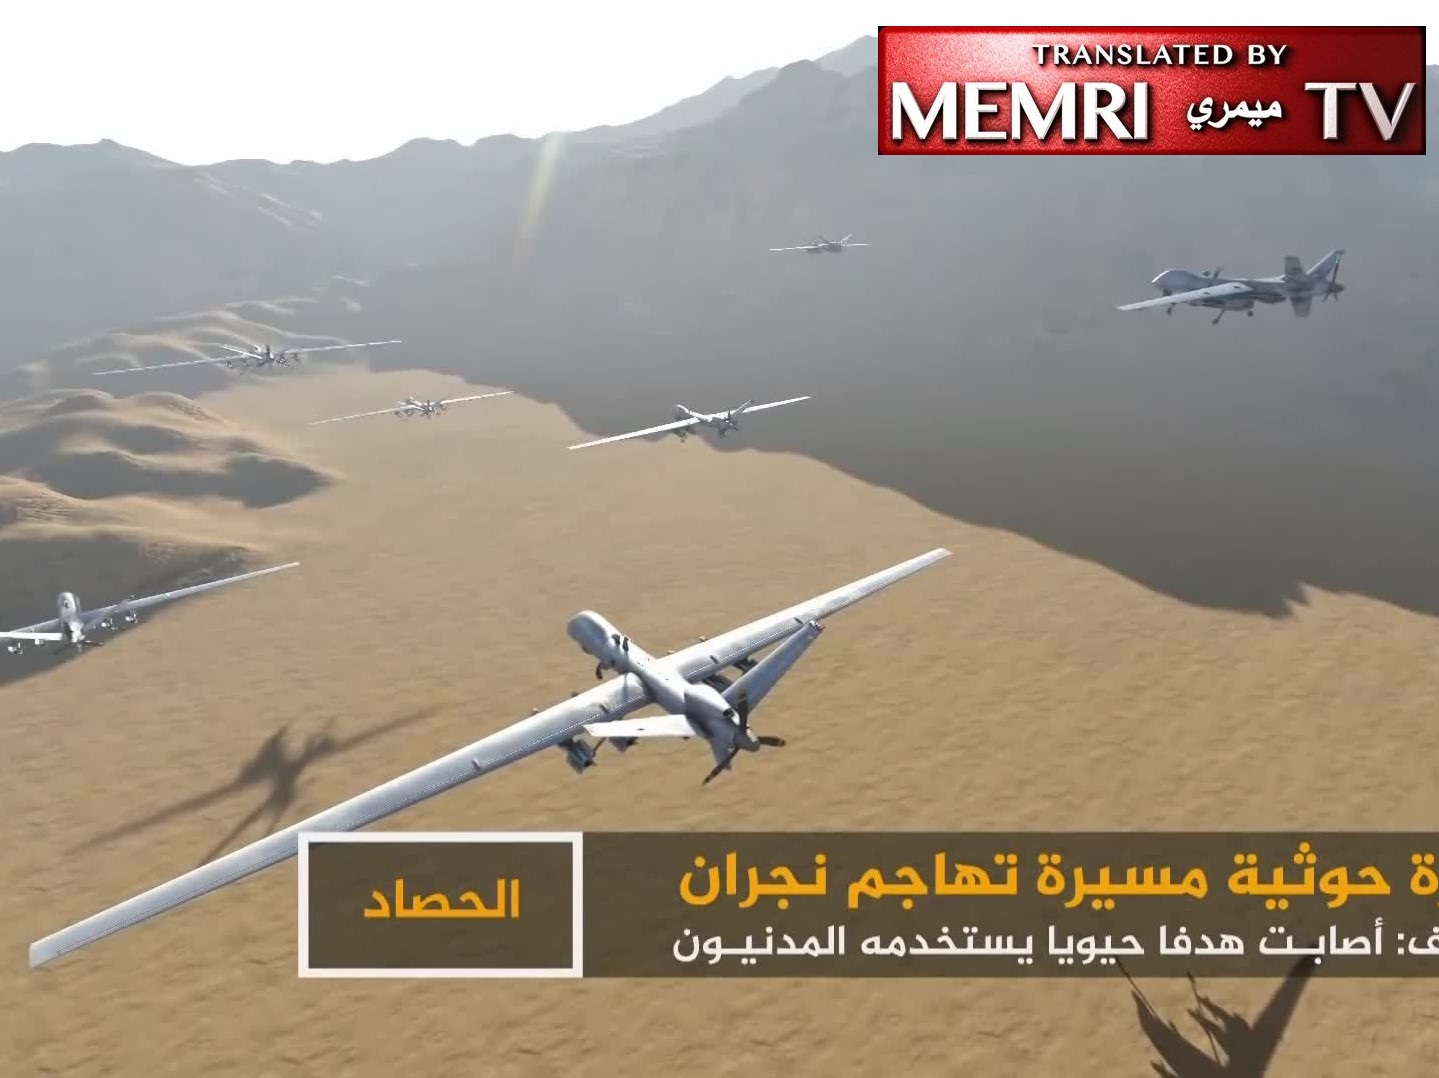 Al-Jazeera Network Airs Footage of Houthi Drone Attacks in KSA: Houthis Able to Target Riyadh, Abu Dhabi, Oil Facilities, Airports, Seaports